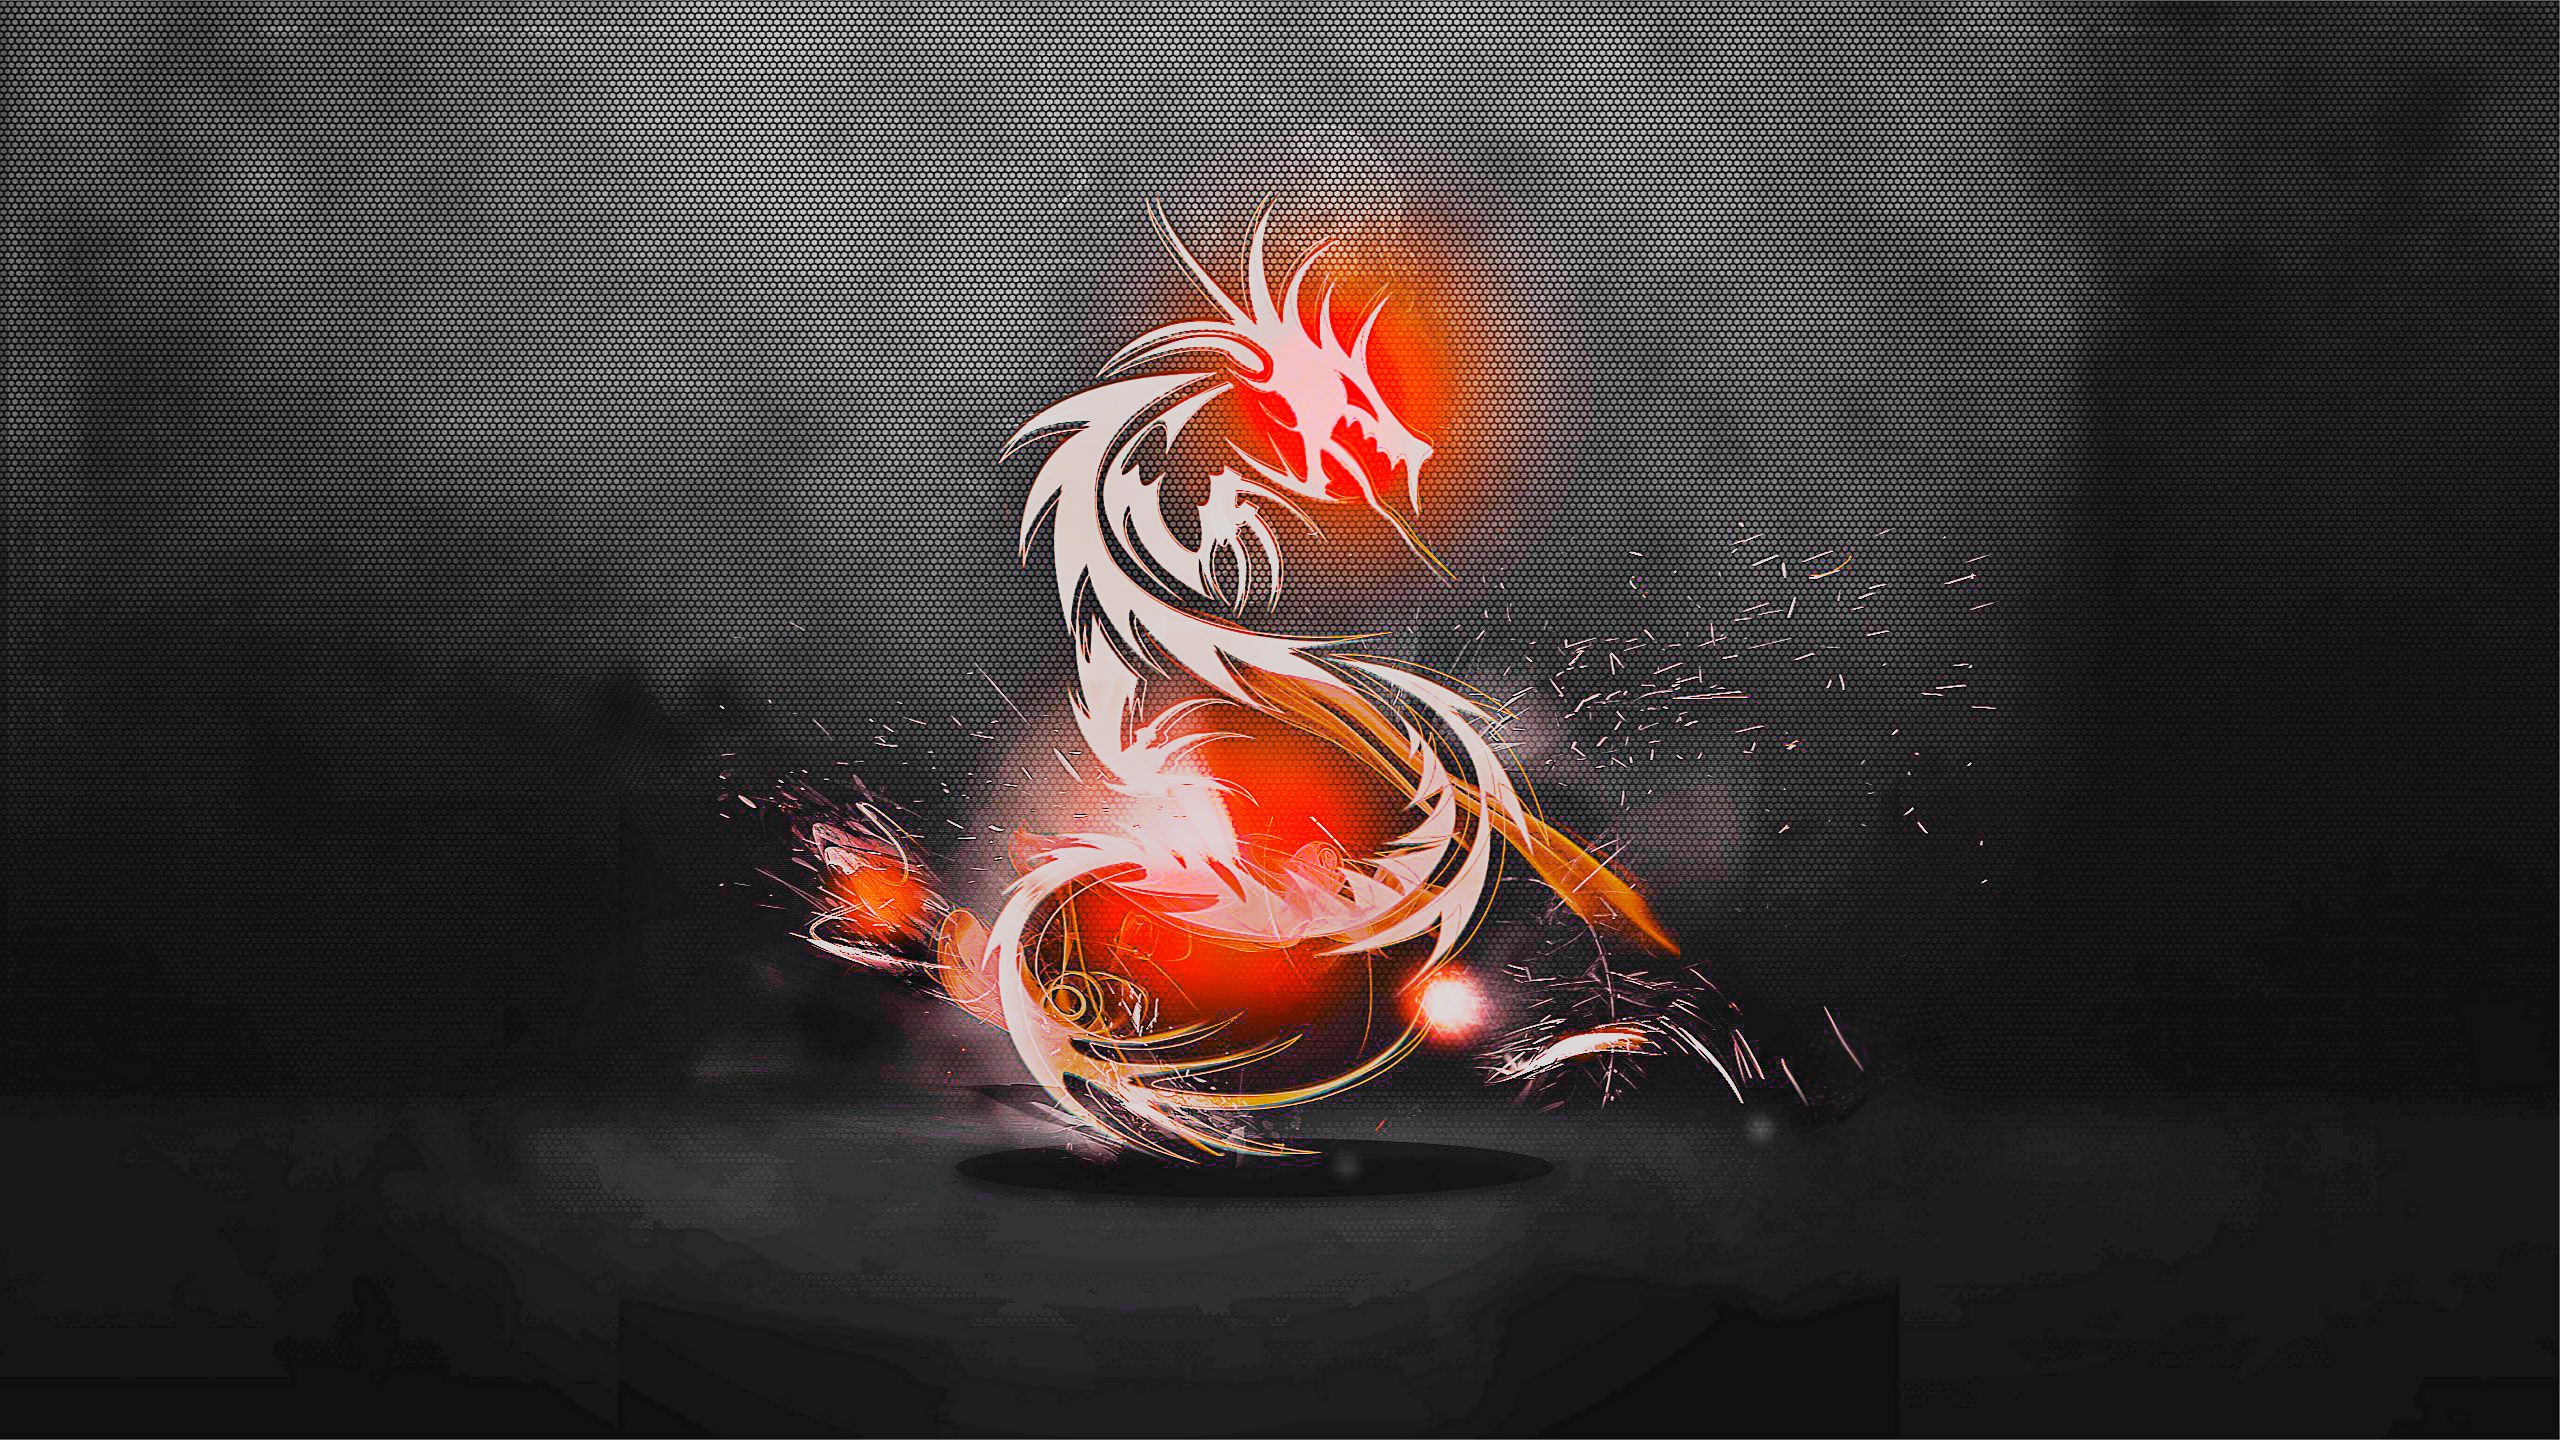 ... the abstract wallpapers category of free hd wallpapers abstract dragon